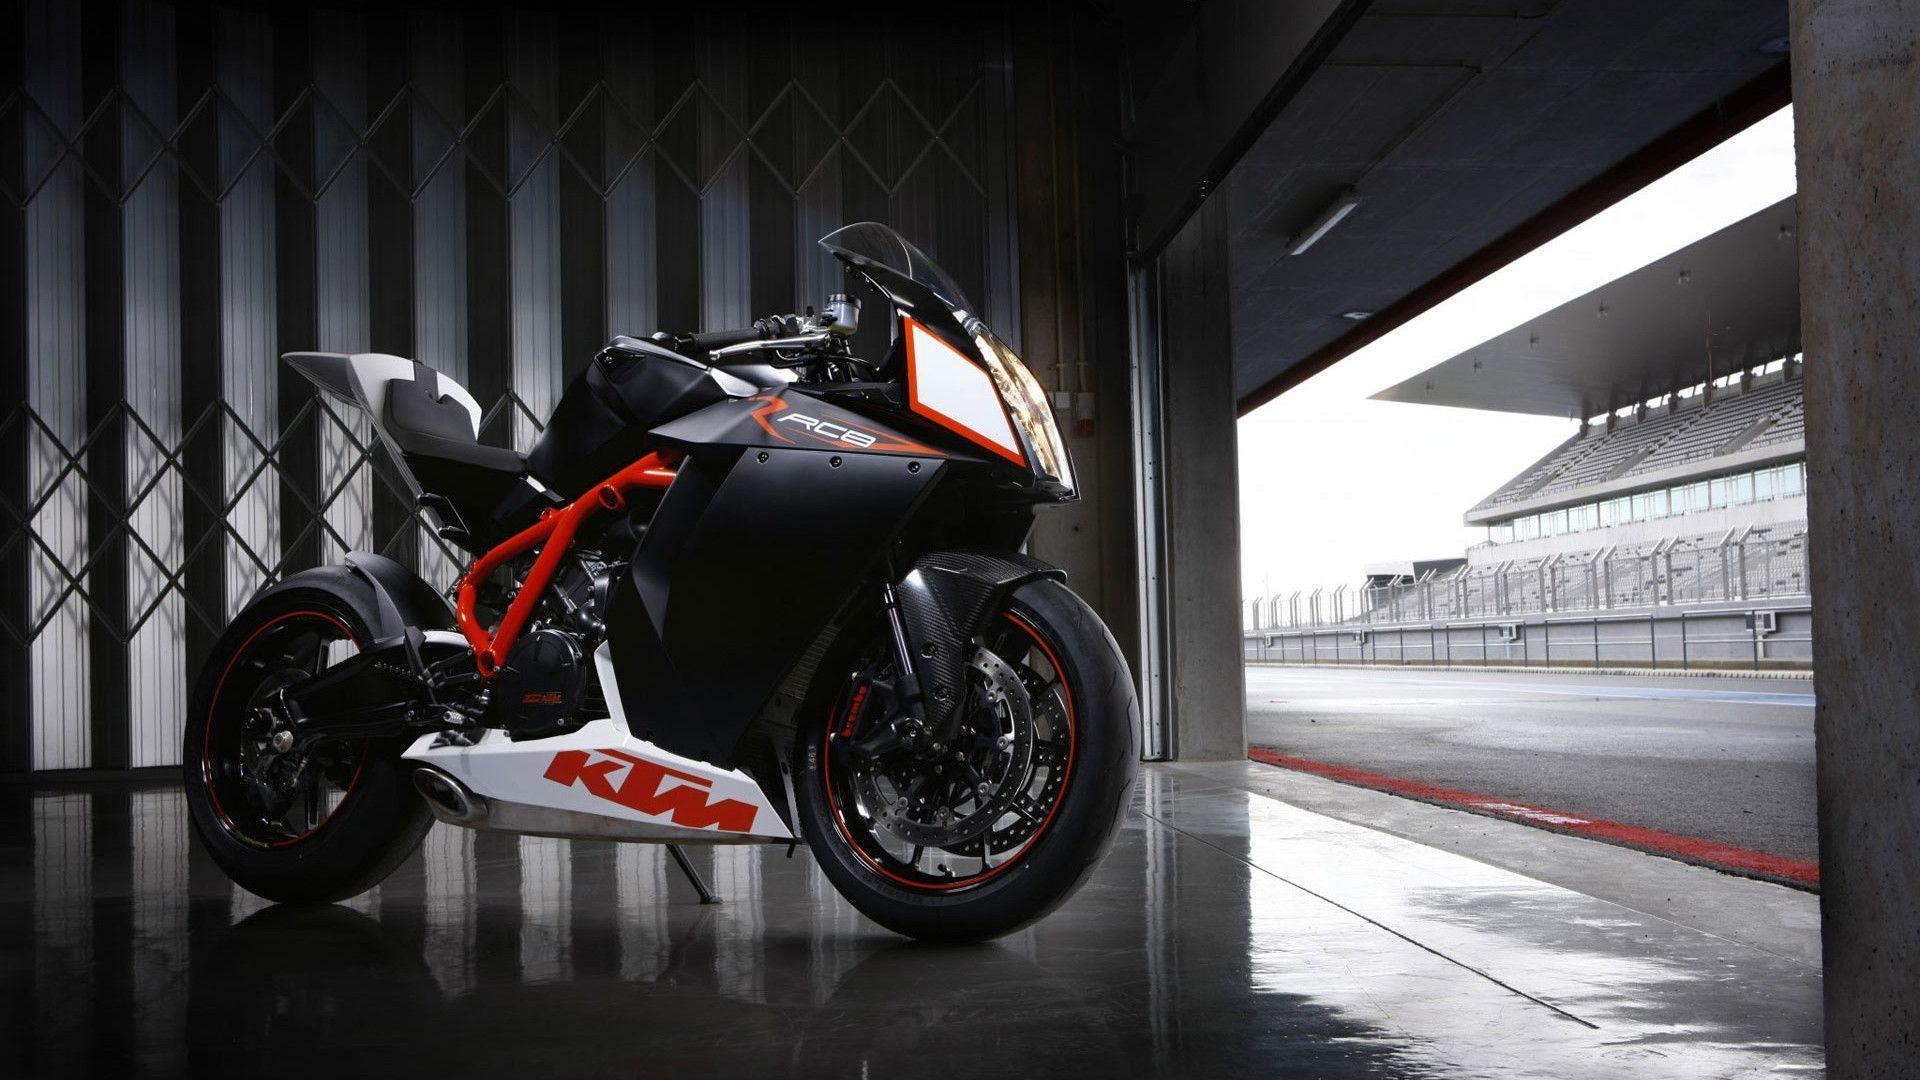 KTM RC 8 Wallpapers For IPhone Wallpapers